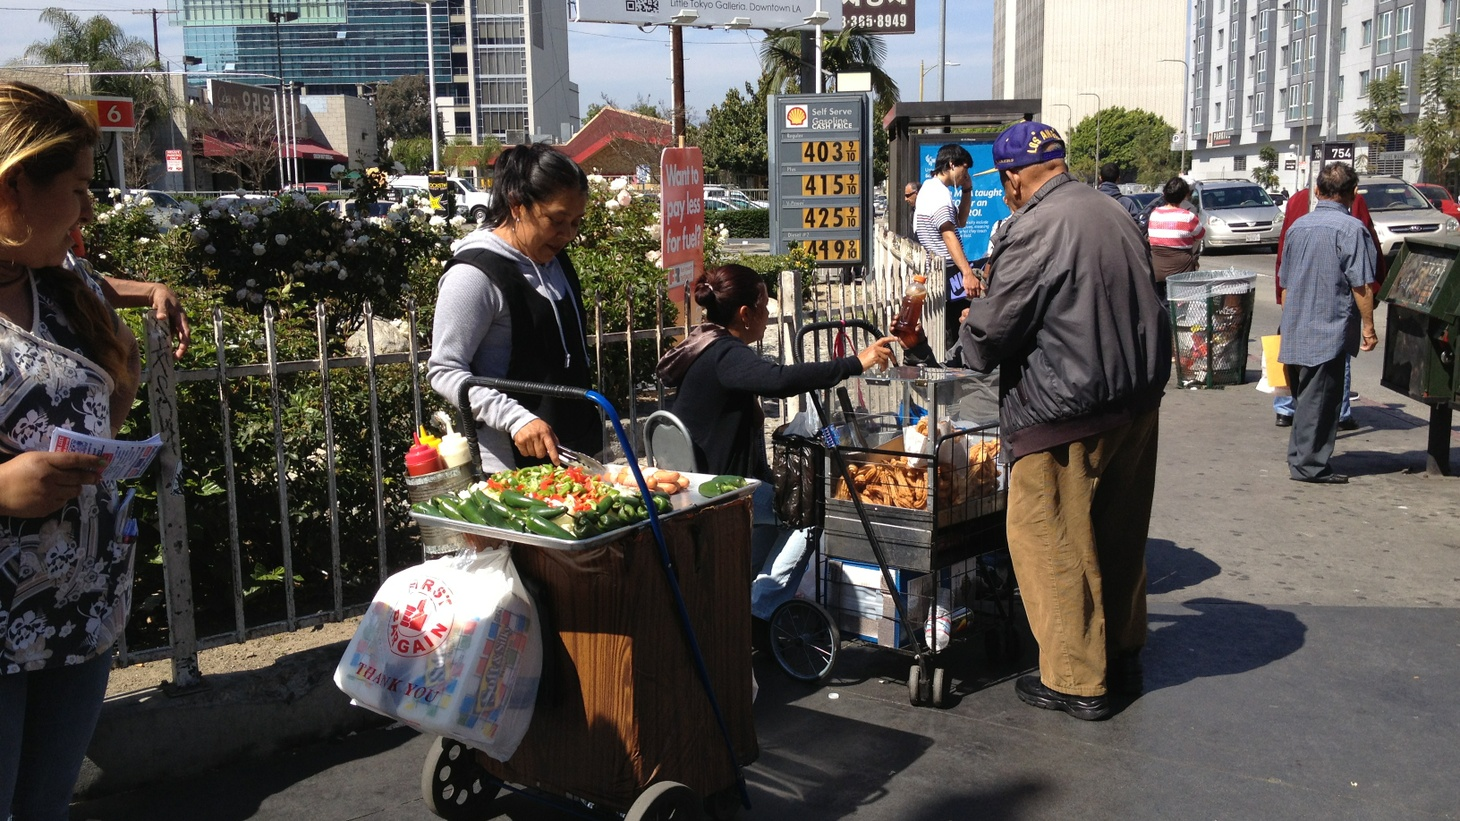 Street vendors on Vermont Avenue in Los Angeles.